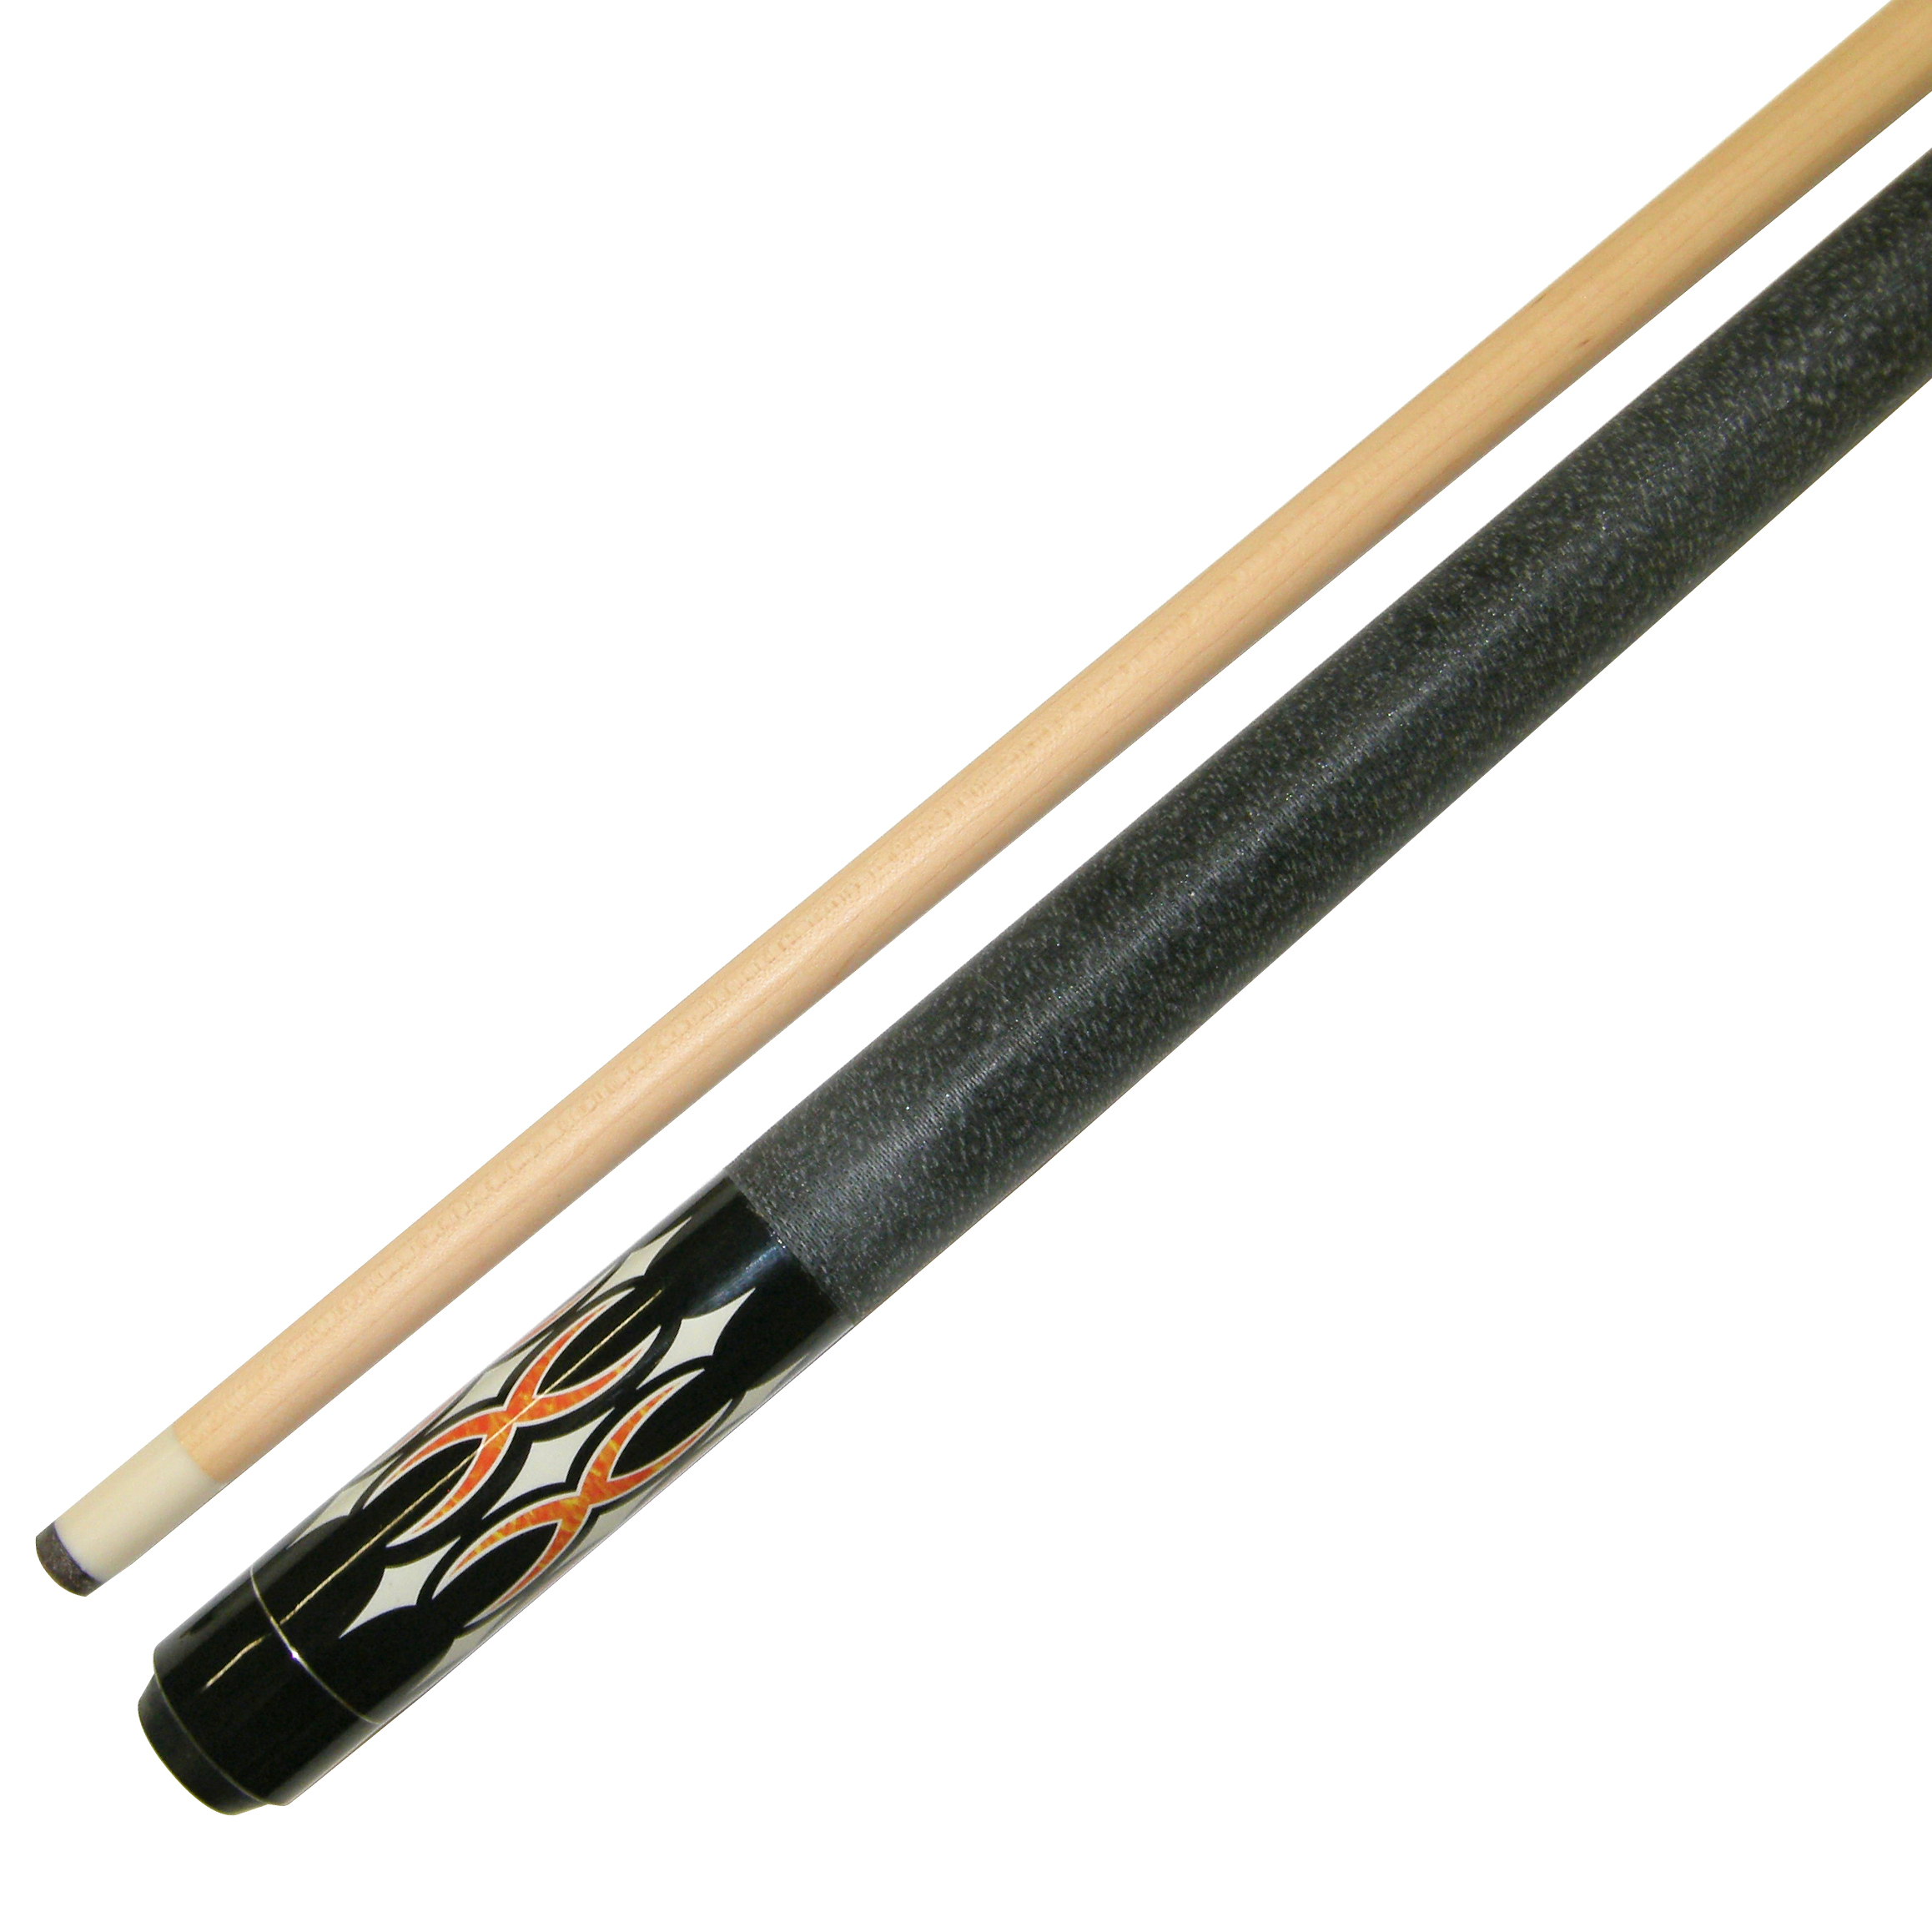 "58"" 2 Piece Hardwood Canadian Maple Billiard Pool Cue Stick 21 Ounce by"